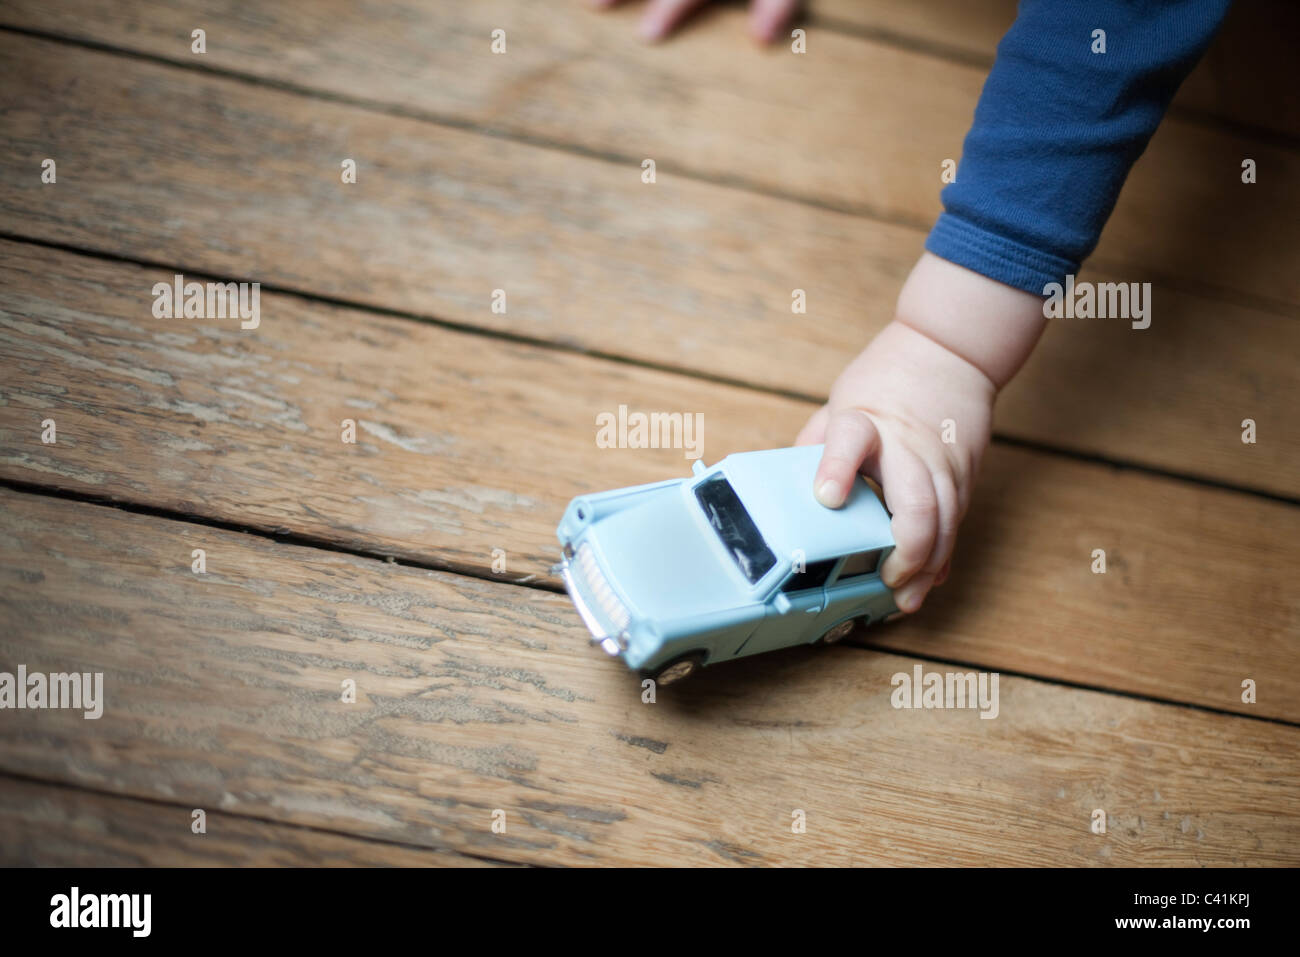 Child's hand holding toy car Stock Photo